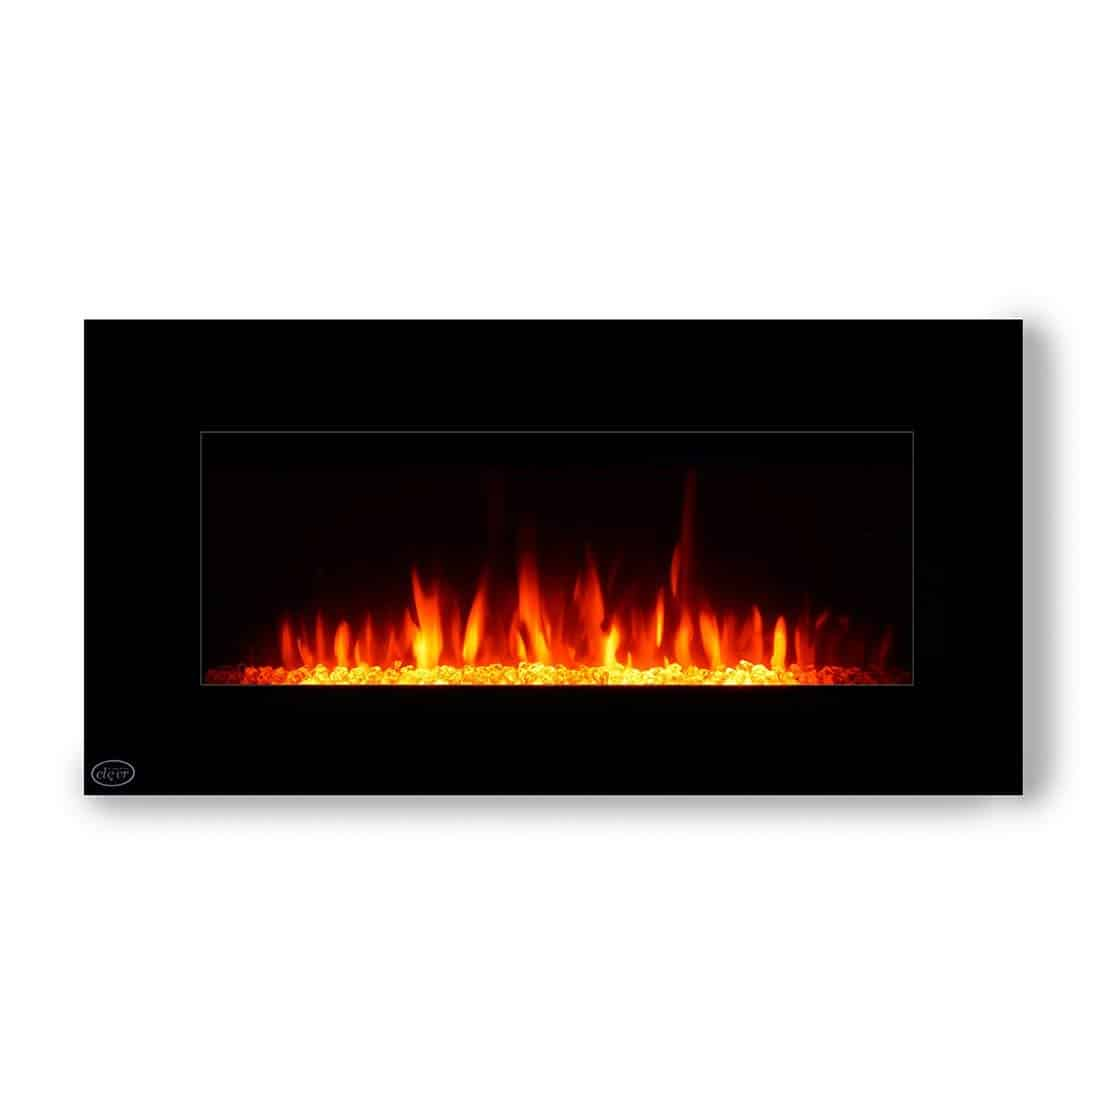 The Clever 32  Wall Mounted Modern Heater 1500W Vertical Wall Mount Electric Fireplace Heater 3D Flame Technology